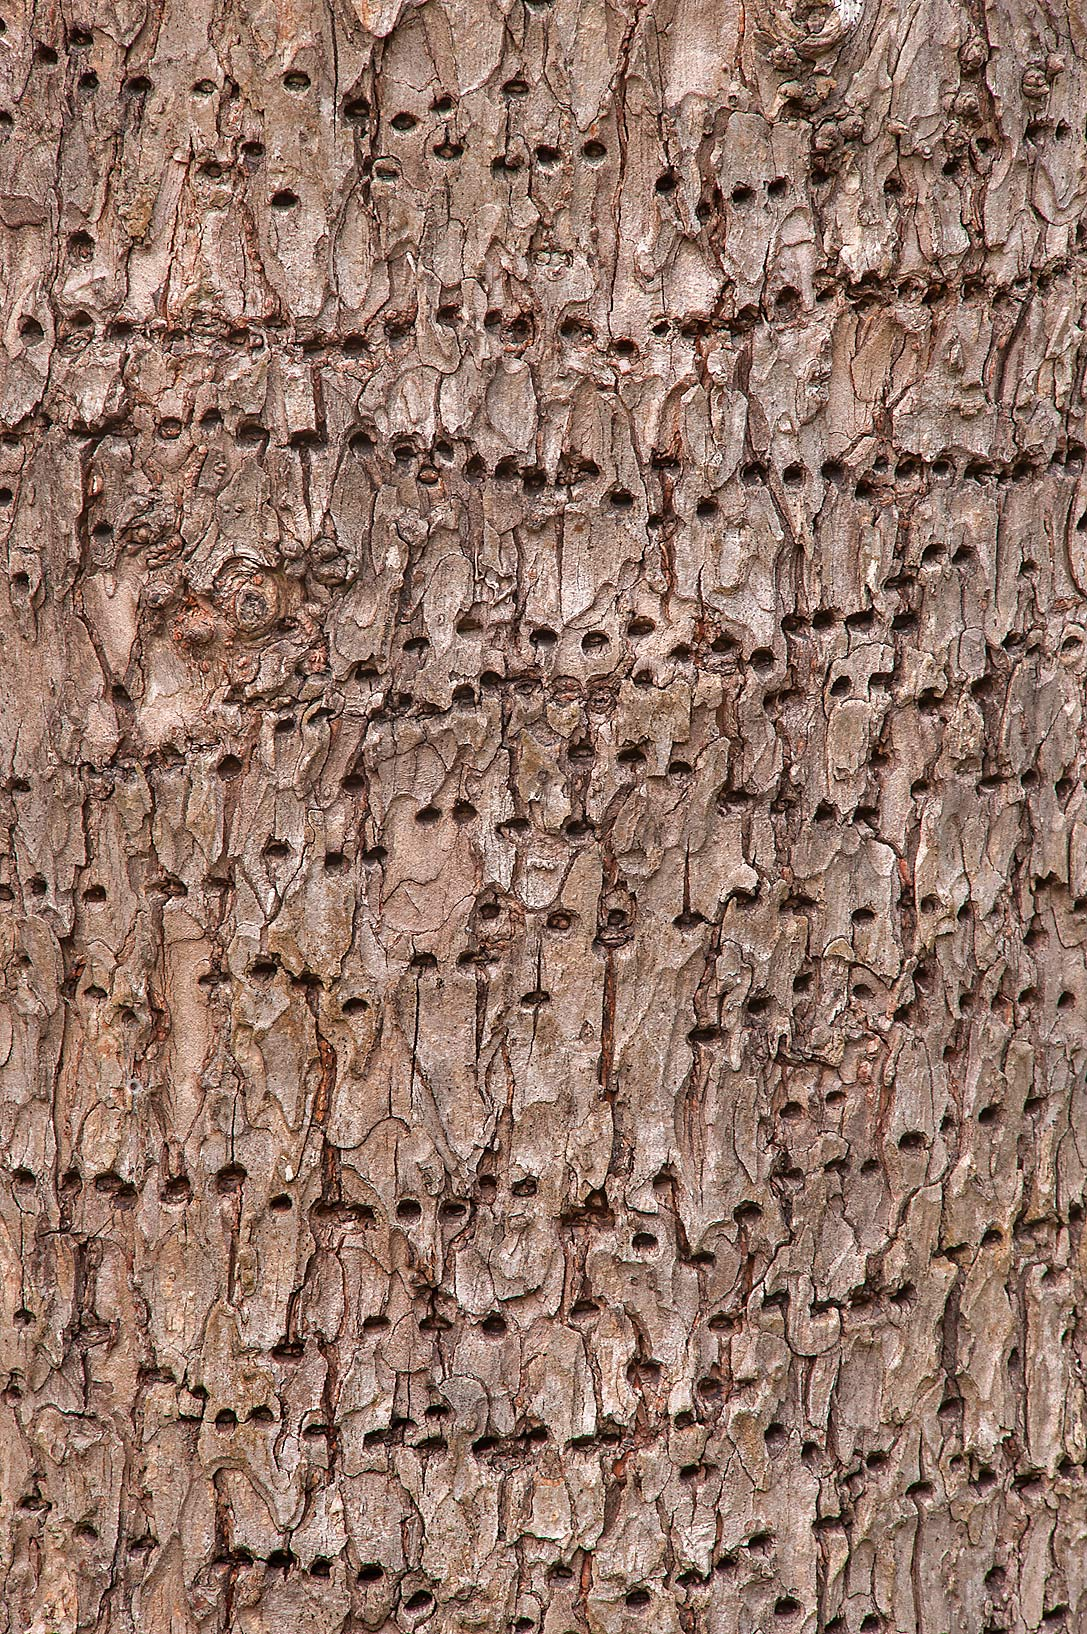 Tree with sapsucker holes (sapwells) on Racoon...Creek Park. College Station, Texas